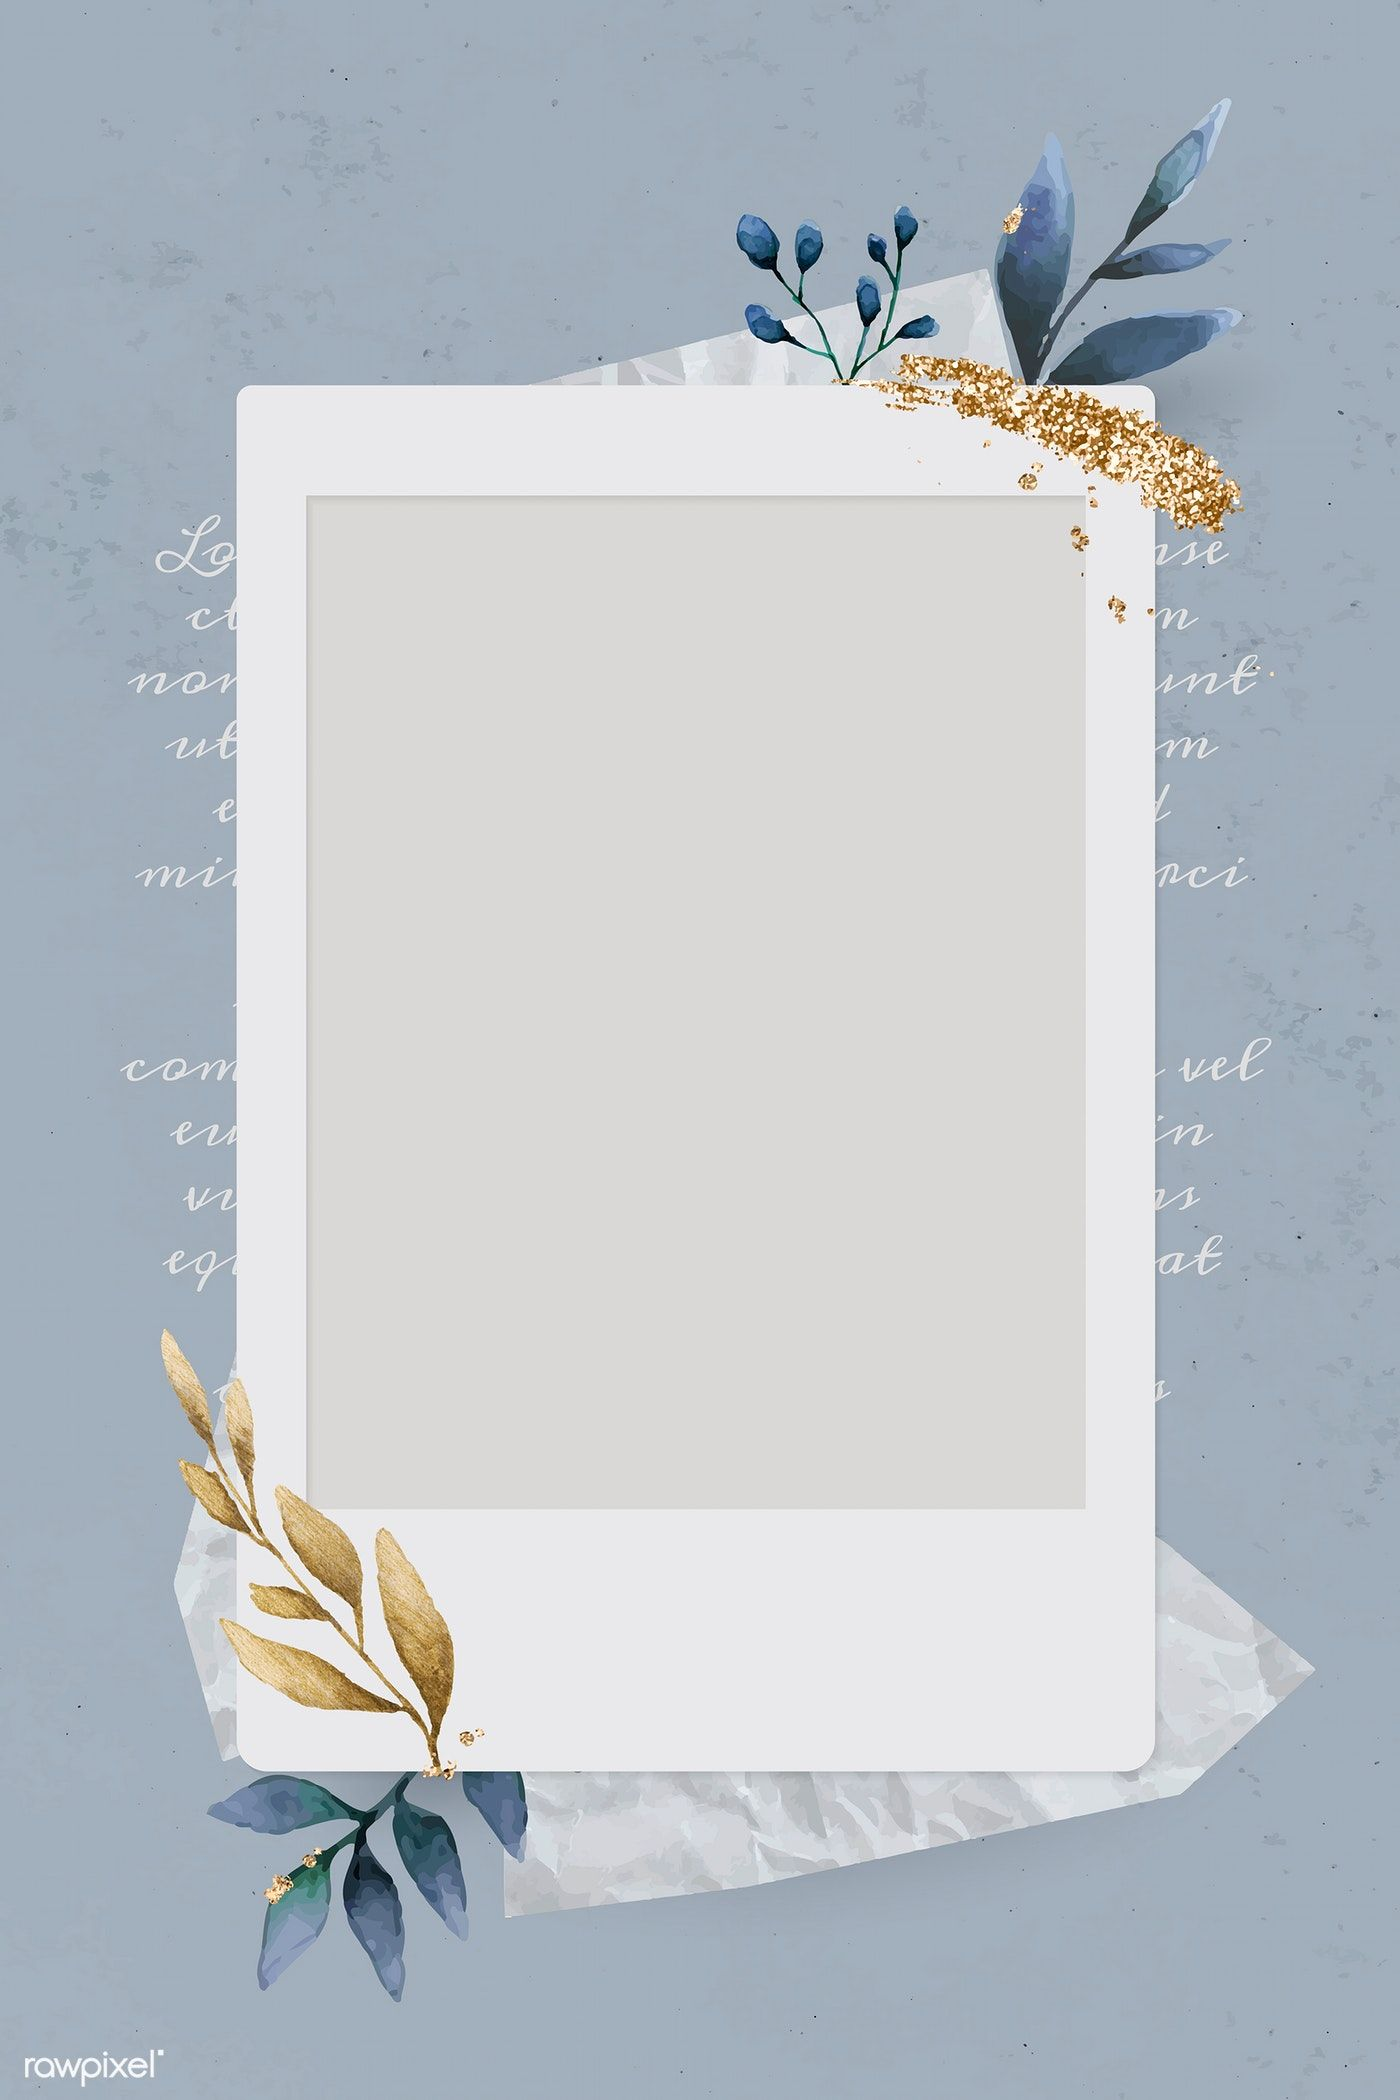 Download Premium Vector Of Christmas Decorated Blank Instant Photo Frame Instagram Frame Template Instagram Photo Frame Photo Collage Template